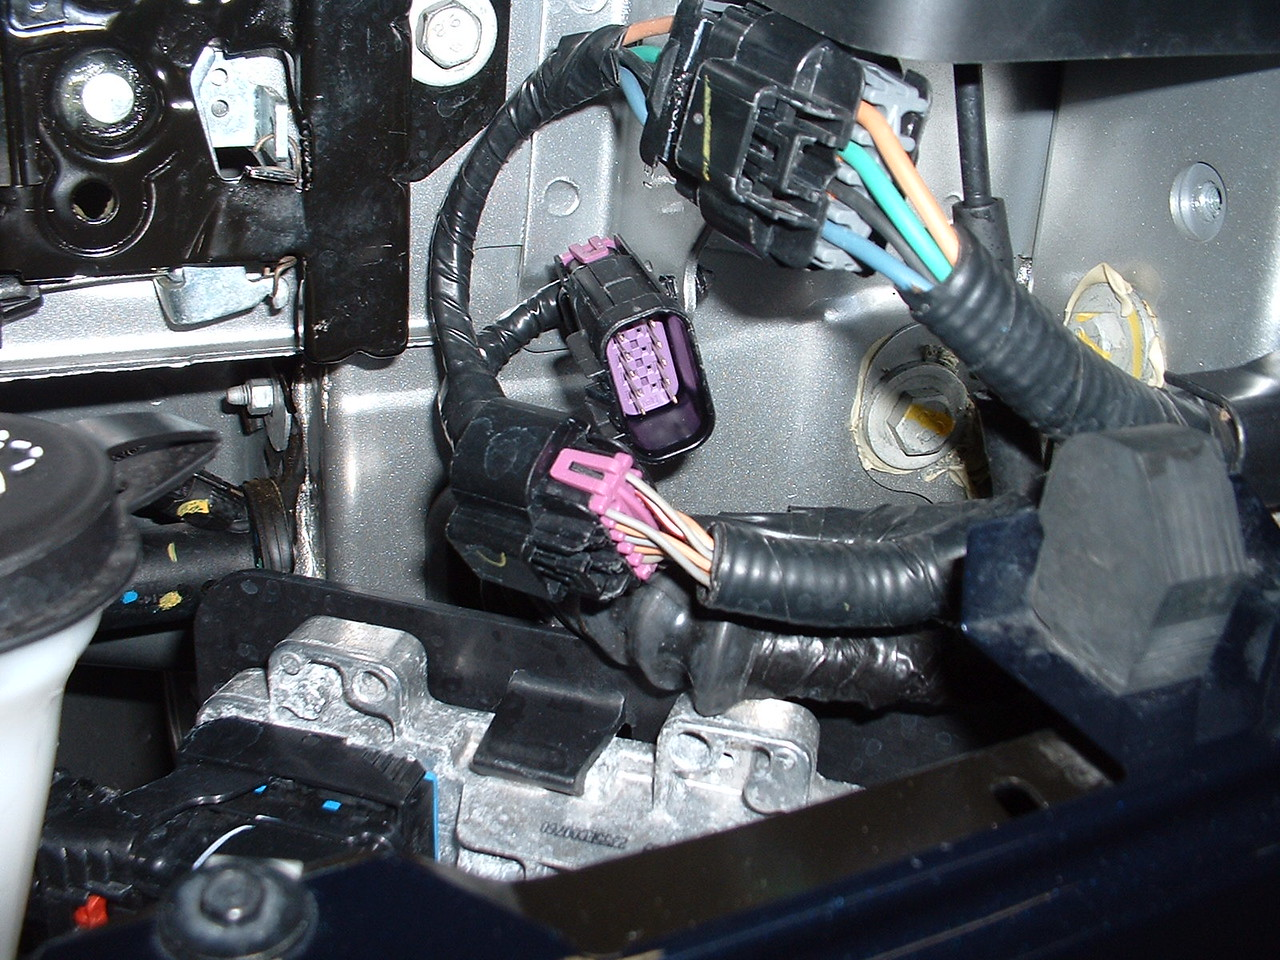 Driver's side plug for power mirror wires, door lock actuator wires, dome light switch wires, and speaker wires.